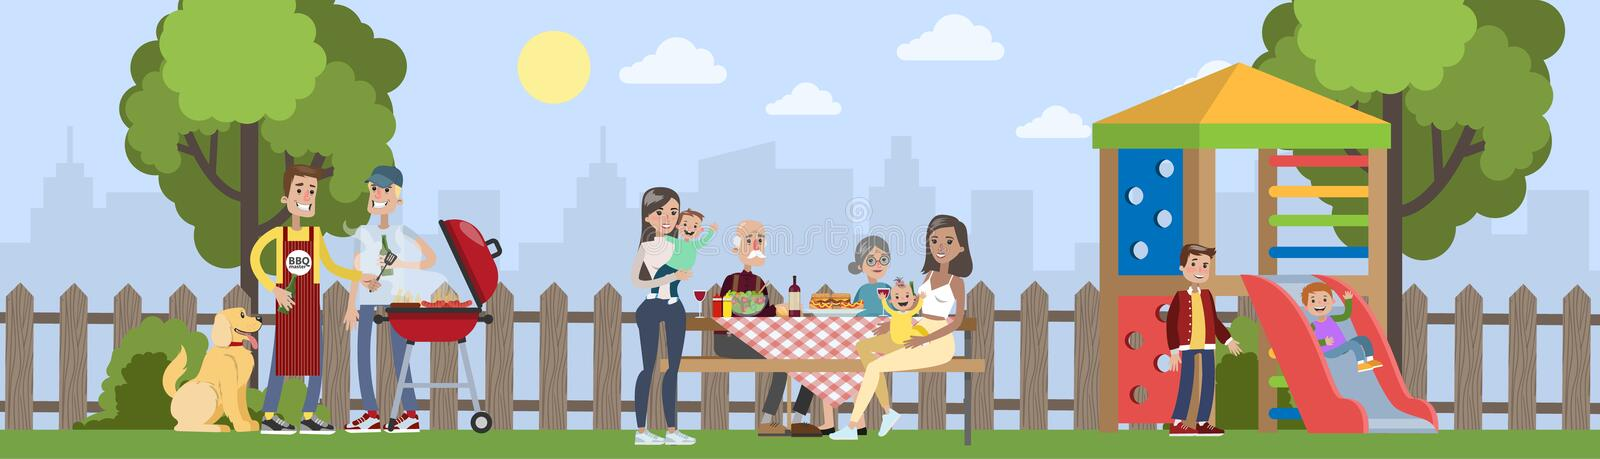 Family on BBQ party on the backyard royalty free illustration